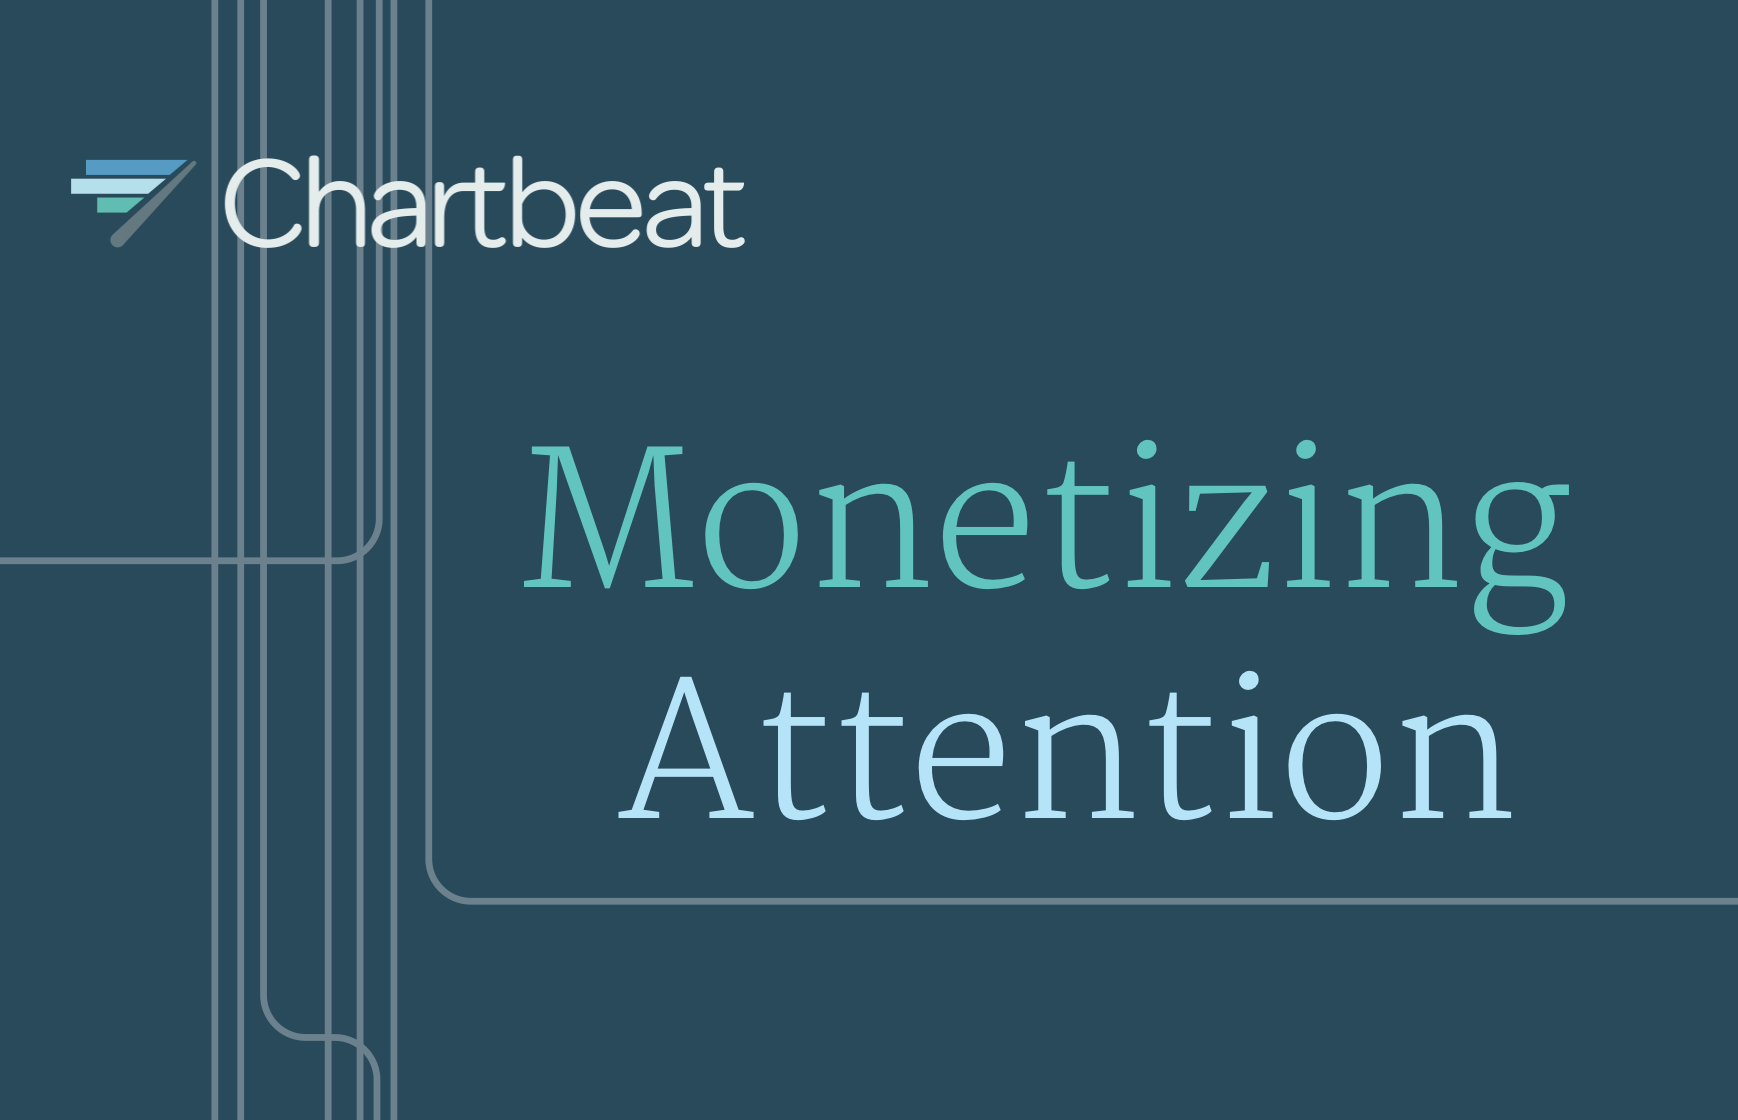 Product marketing for Chartbeat